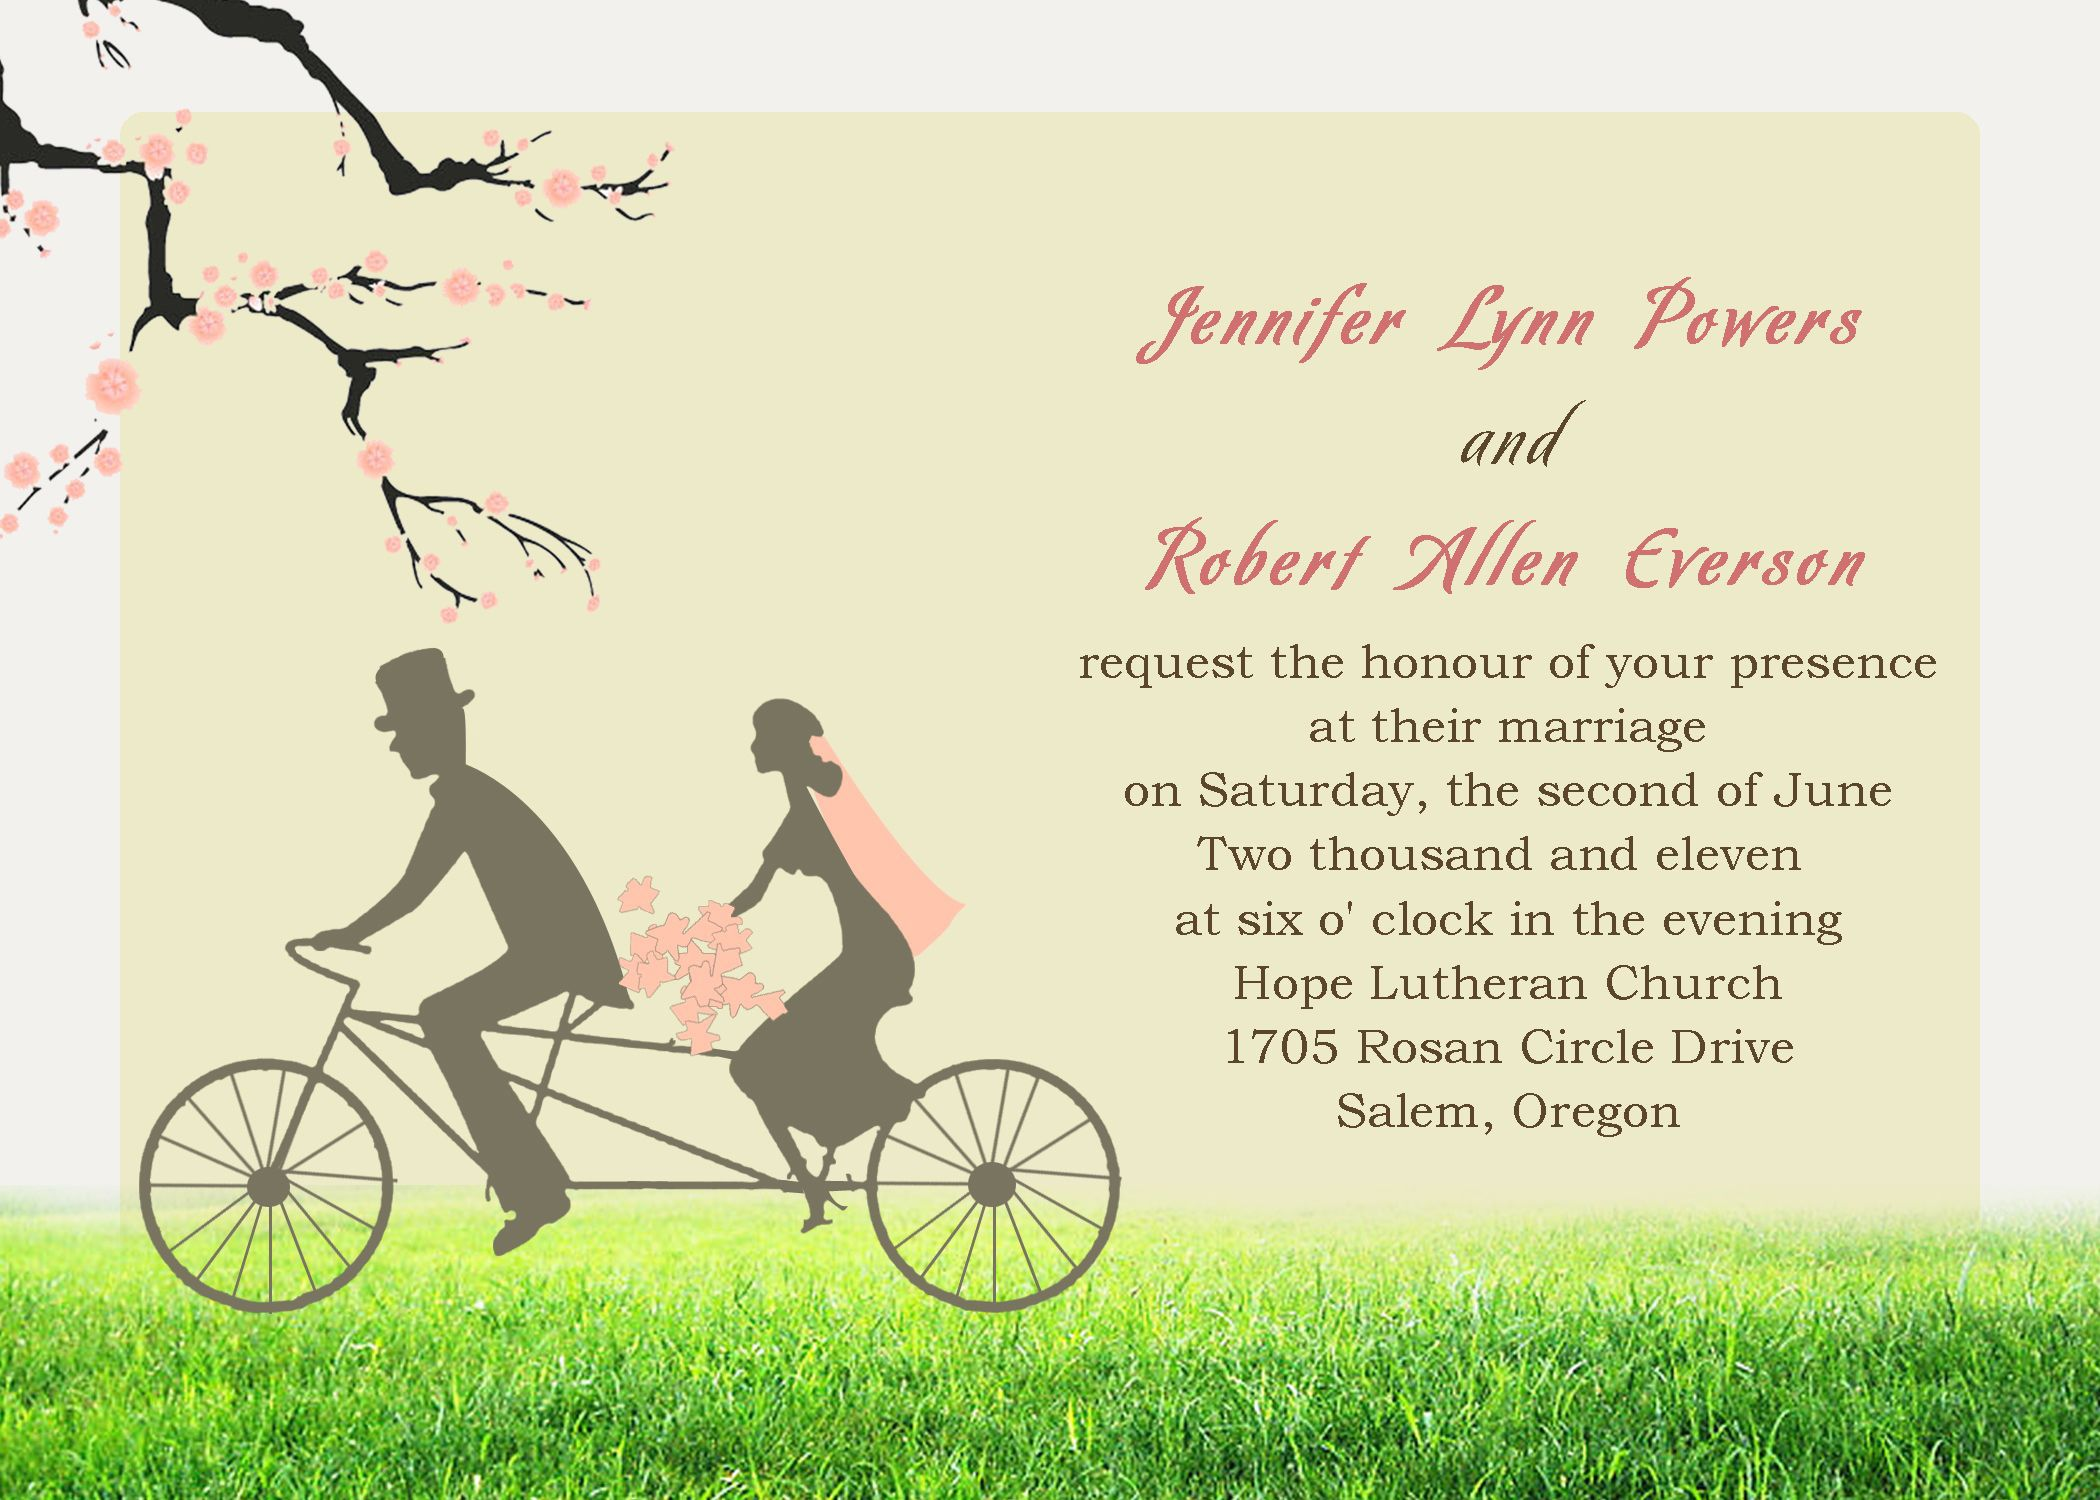 Wedding Invitation Wording Romantic | Jaimie | Pinterest ...